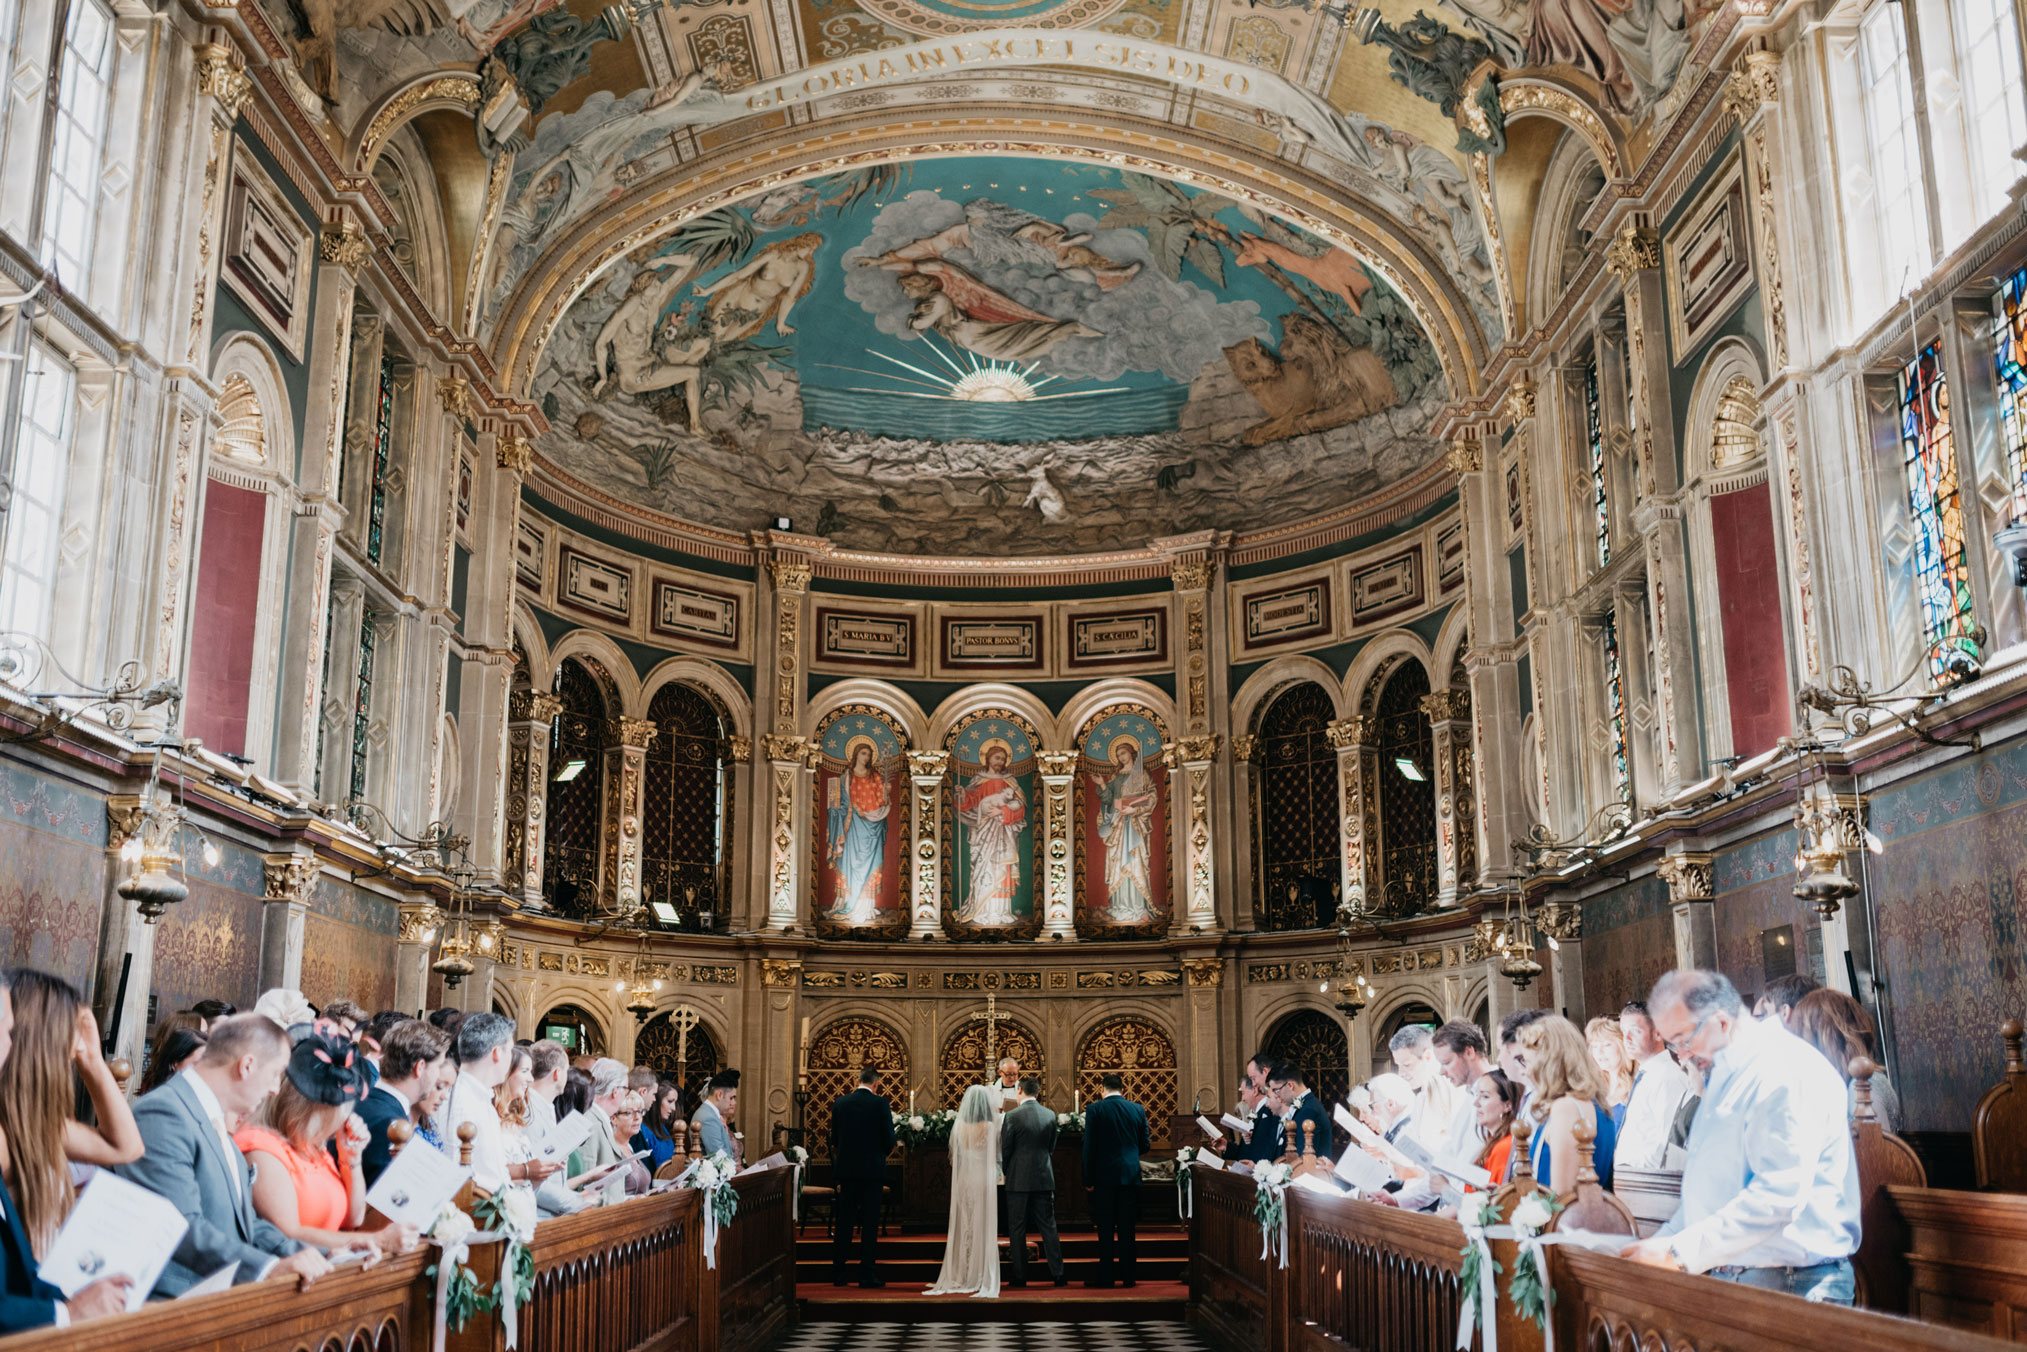 Lauren and Simon getting married at Royal Holloway university in London in a magnificient church